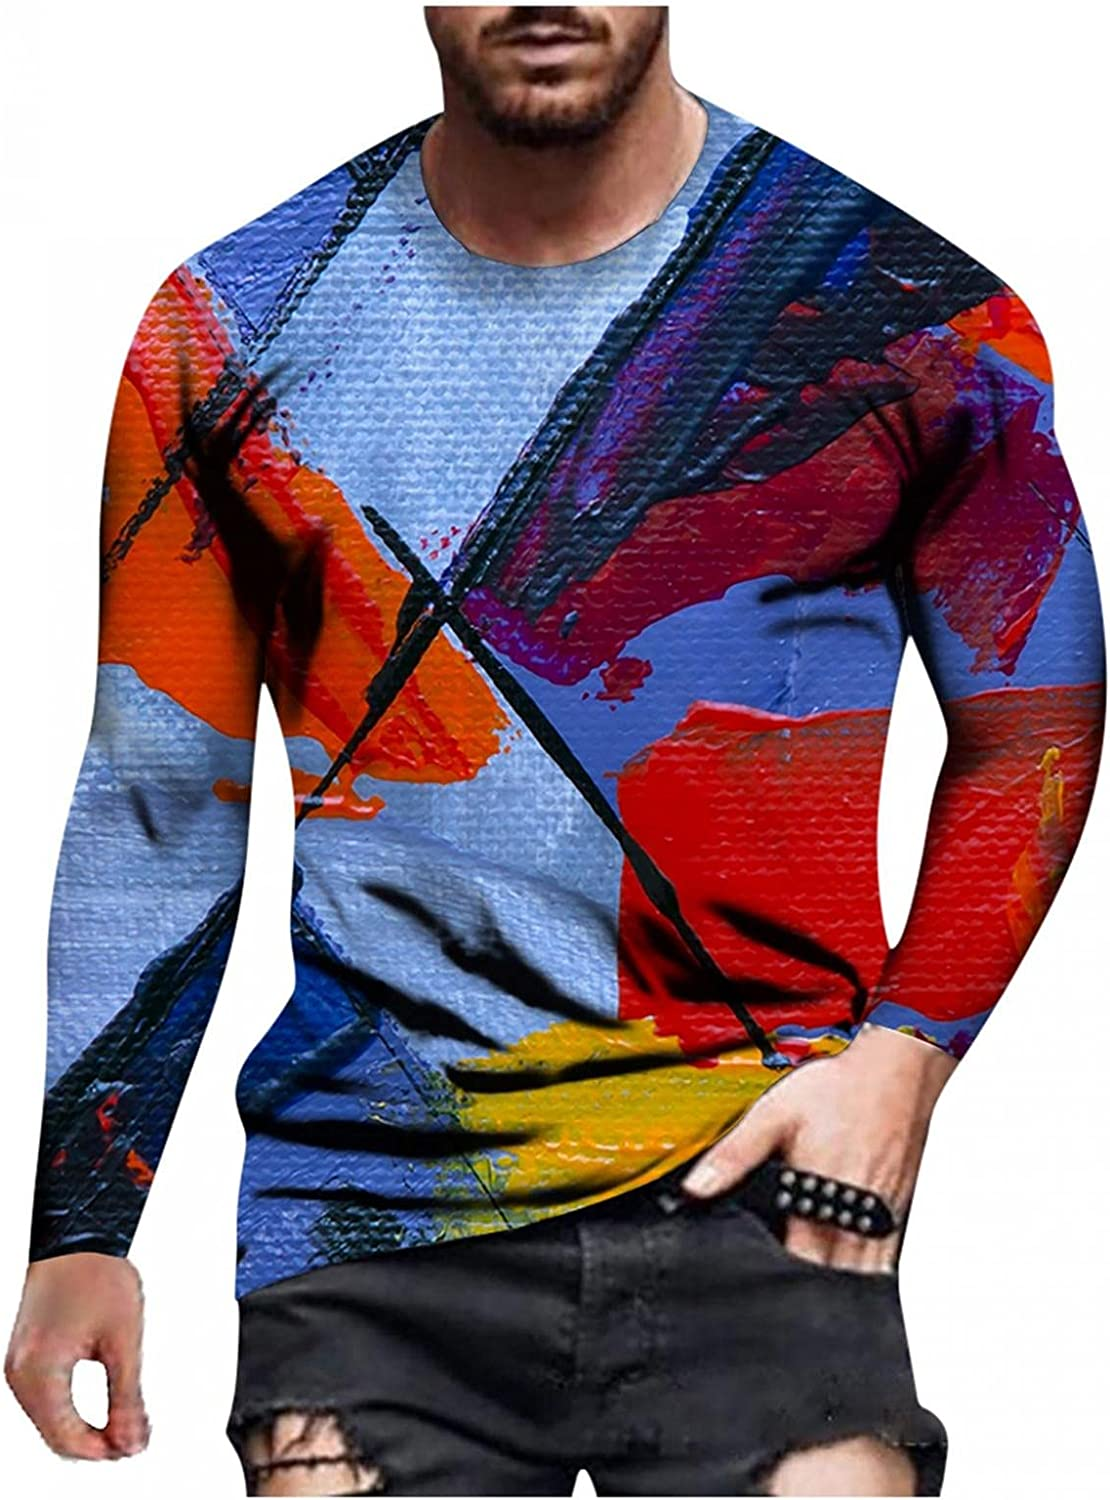 Burband Mens Tie Dye Pullover Sweatshirts Long Sleeve Big and Tall Graphic Tees Autumn Winter Casual Novelty Sport Tops